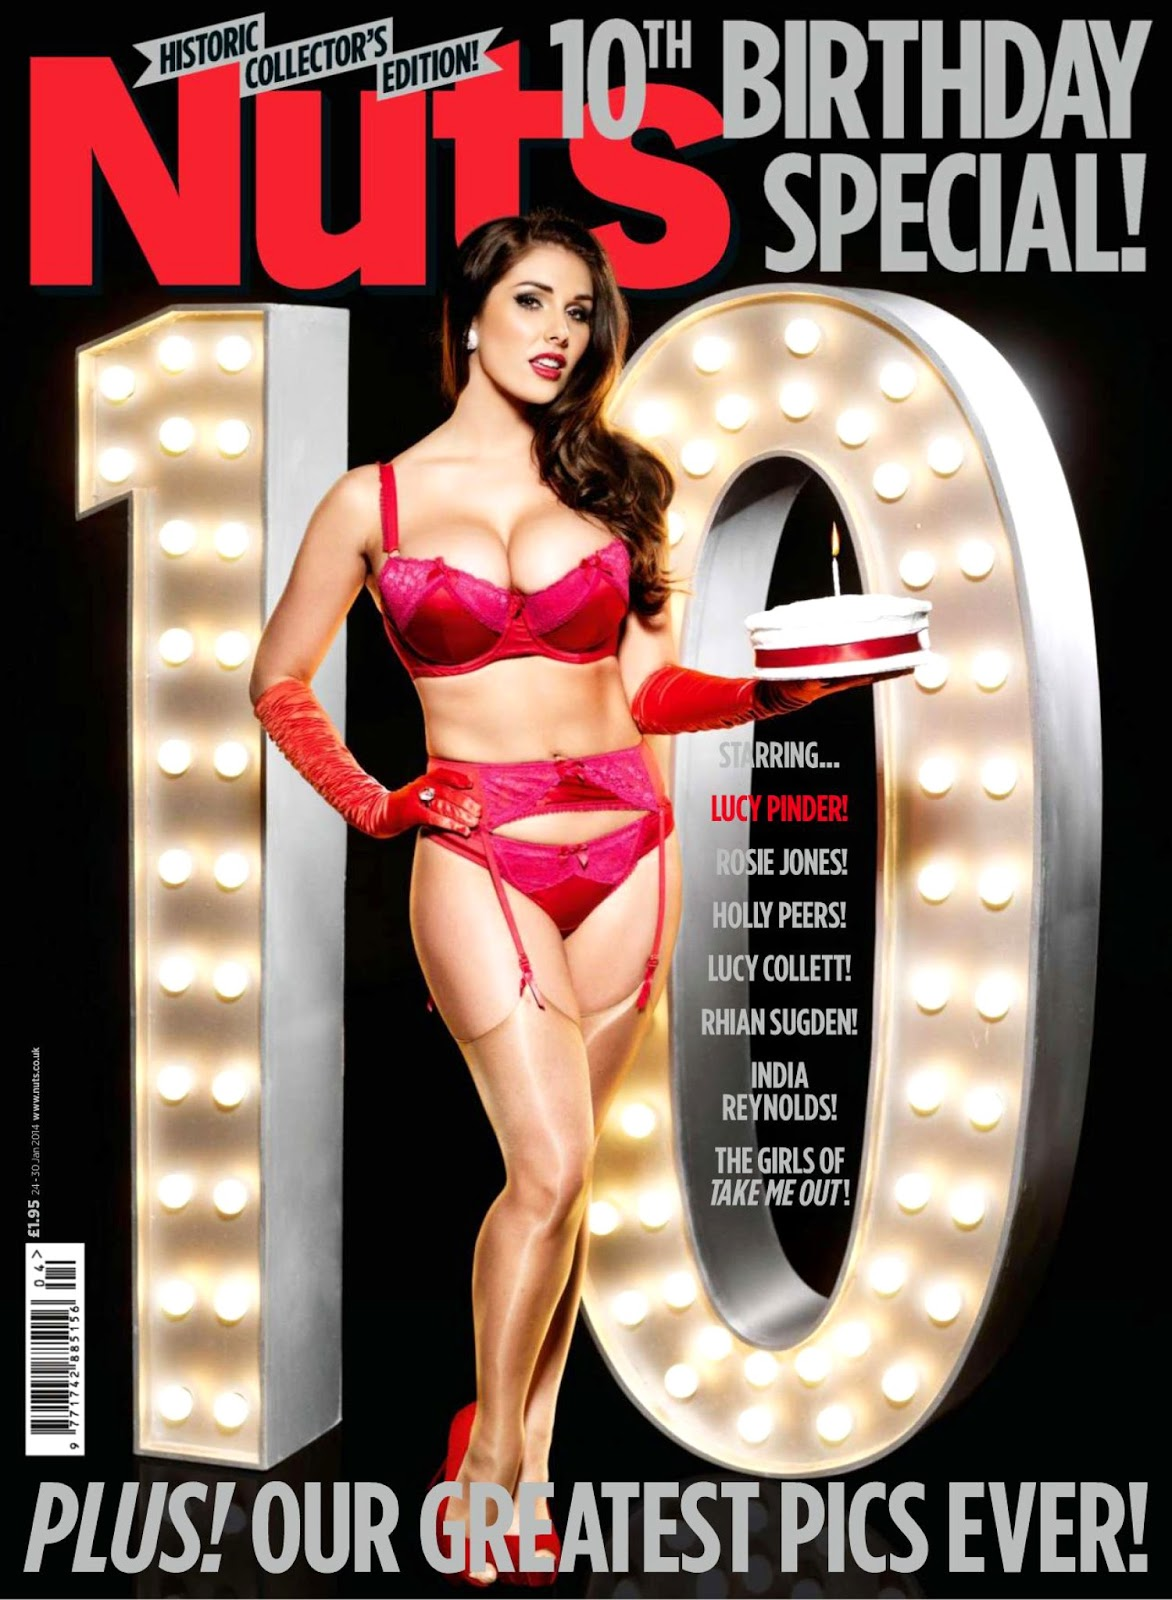 Magazine Photoshoot : Lucy Pinder, Rosie Jones, Holly Peers Photoshot For Nuts Magazine January 2014 Issue